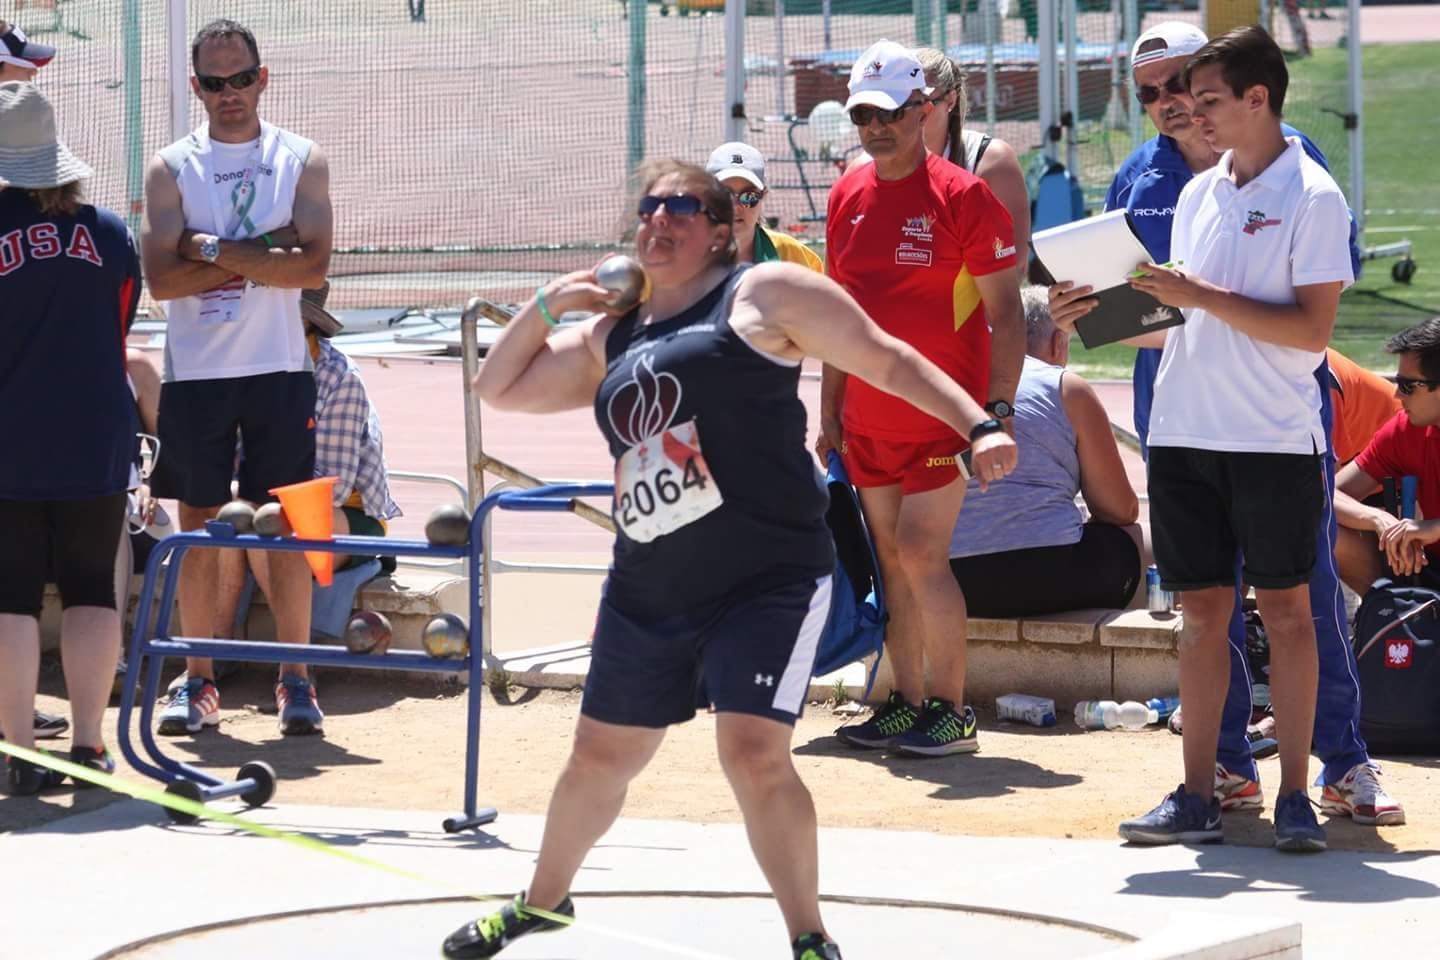 Barb Sheble competing in shot put during Transplant Games